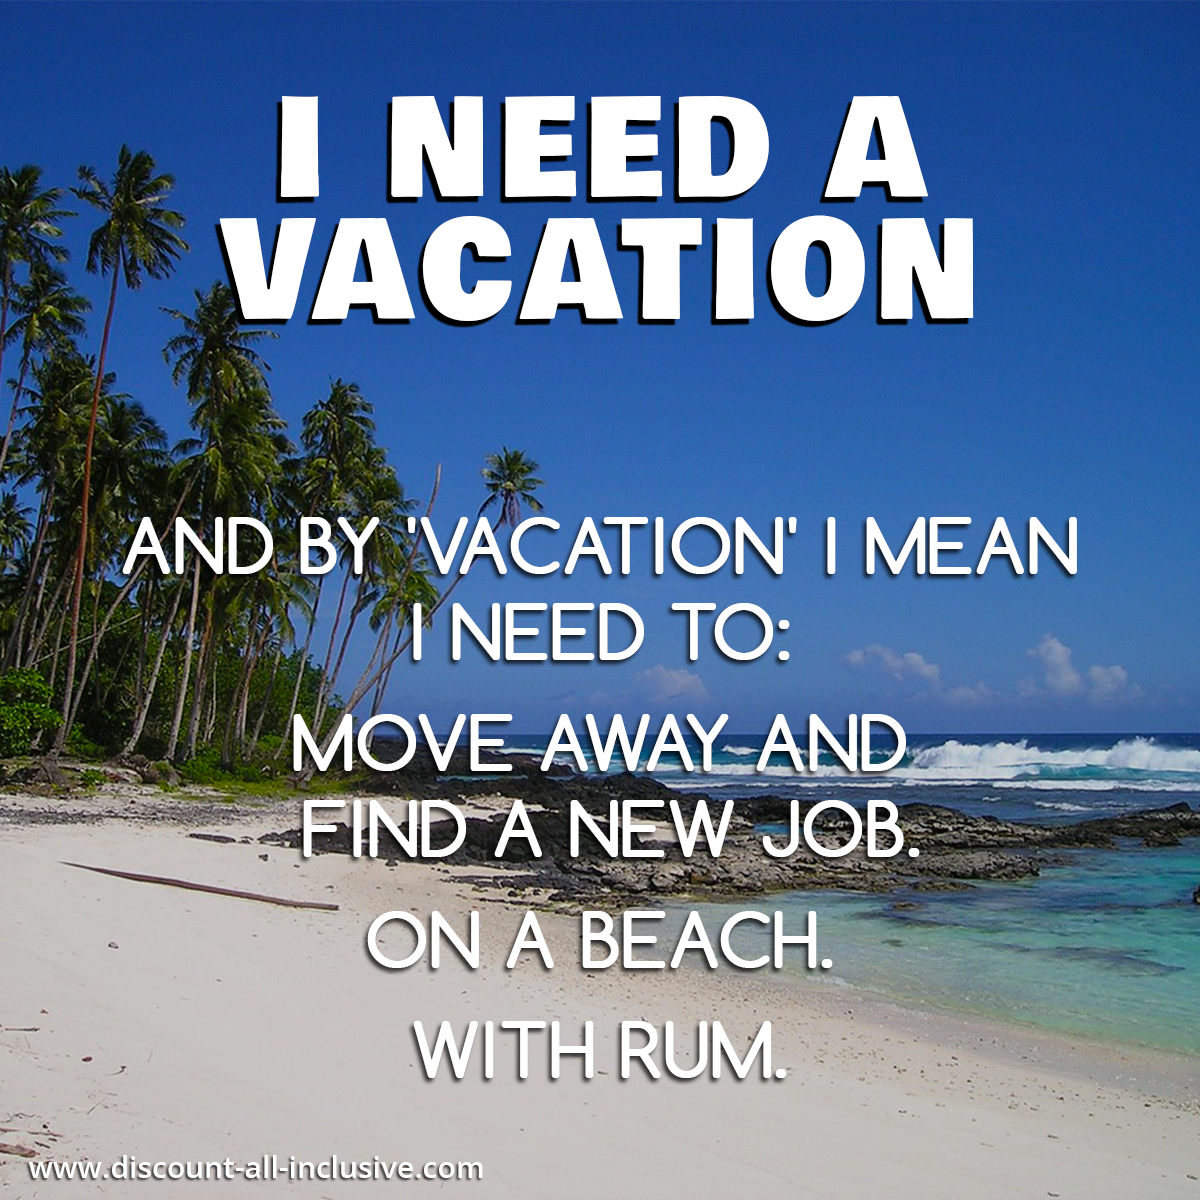 I need a vacation And by vacation I mean I need to move